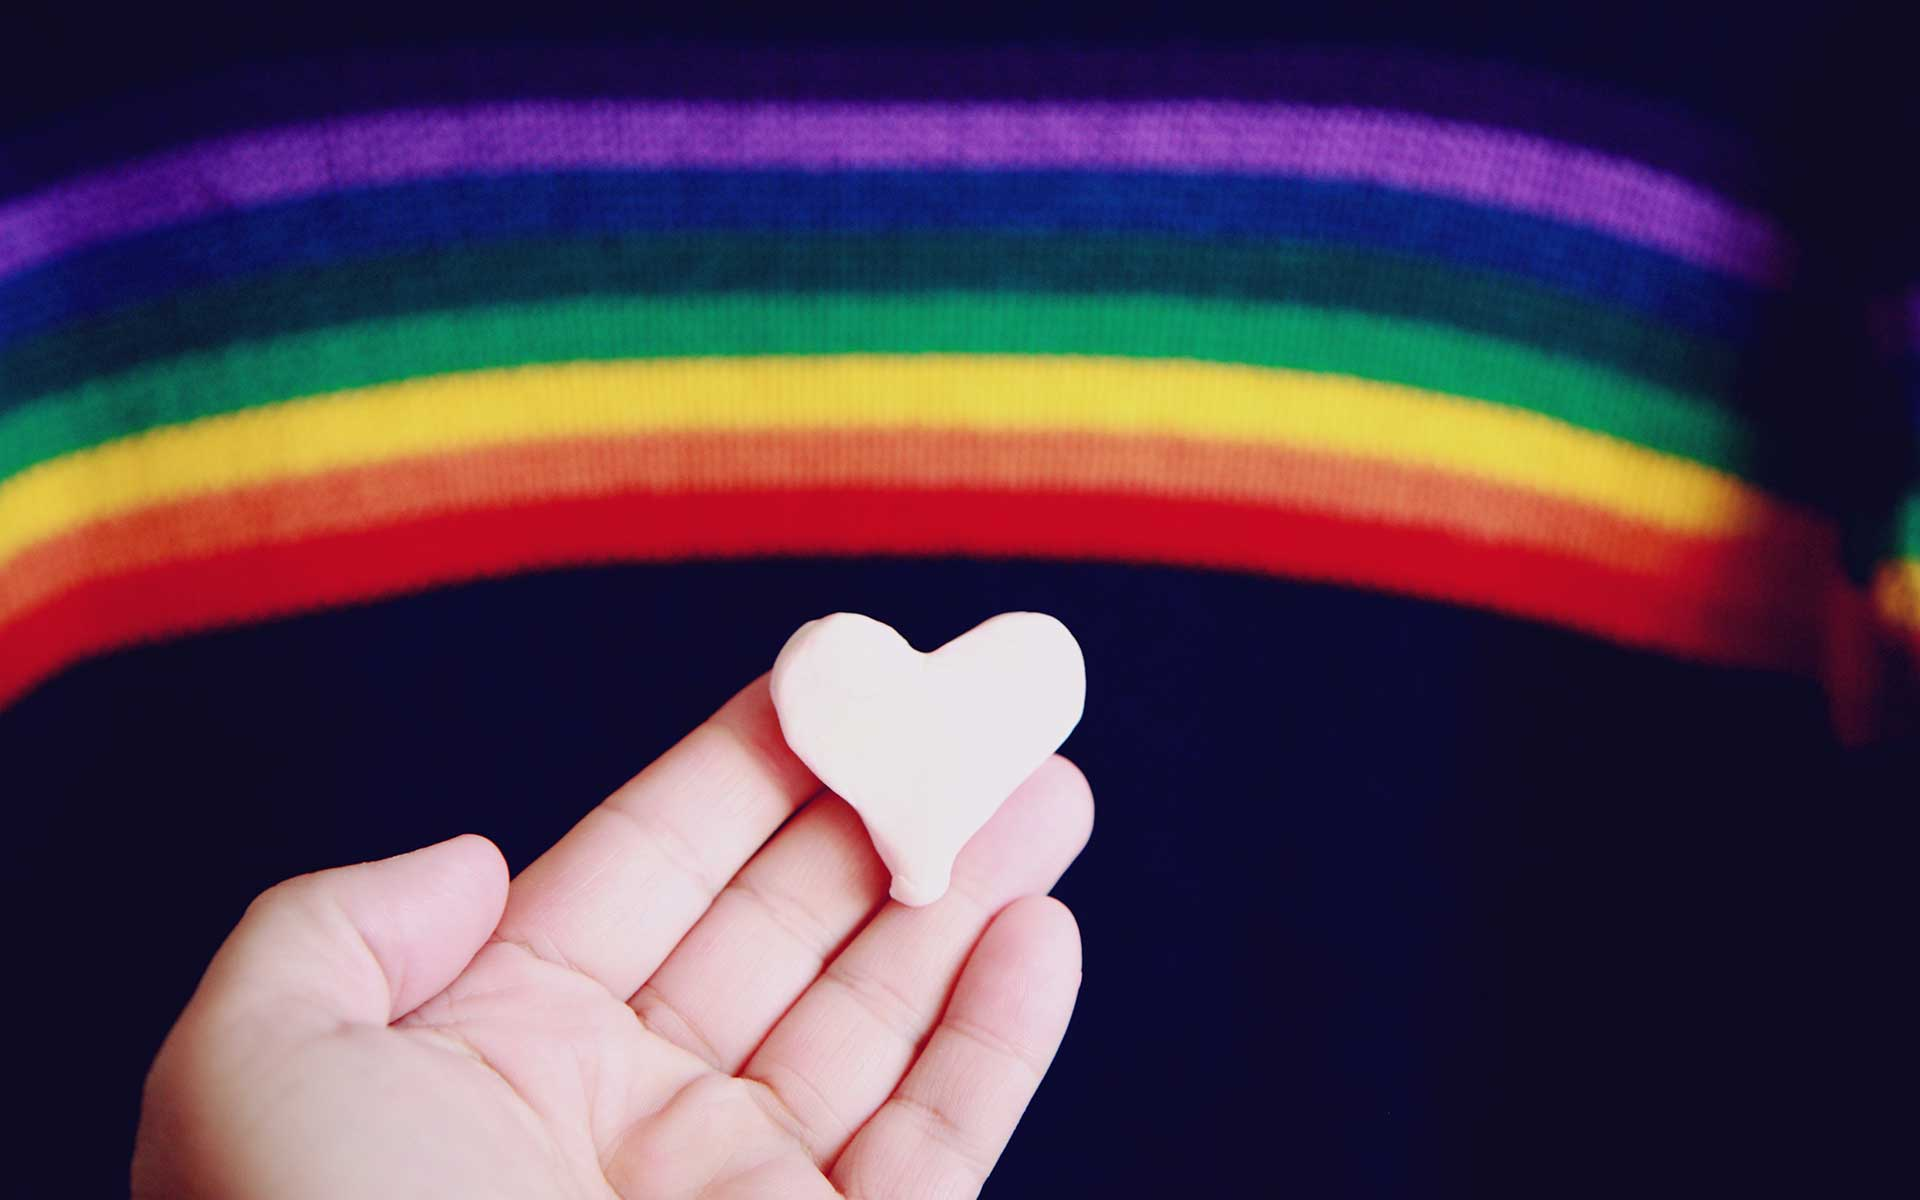 Episode 39: How to Respond to Biphobia and 5 Common LGBTQ+ Myths